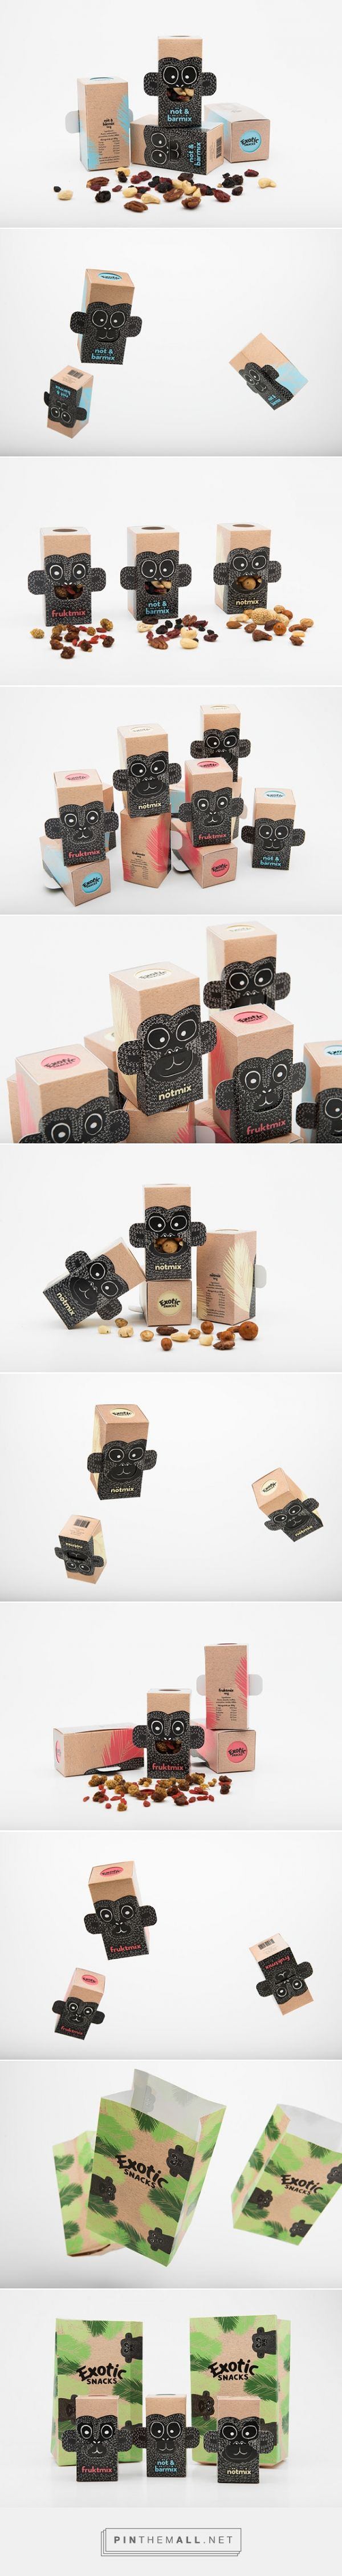 Exotic Snacks Kids Selection a Student Project by Brobygrafiska School in Sweden - created via http://pinthemall.net